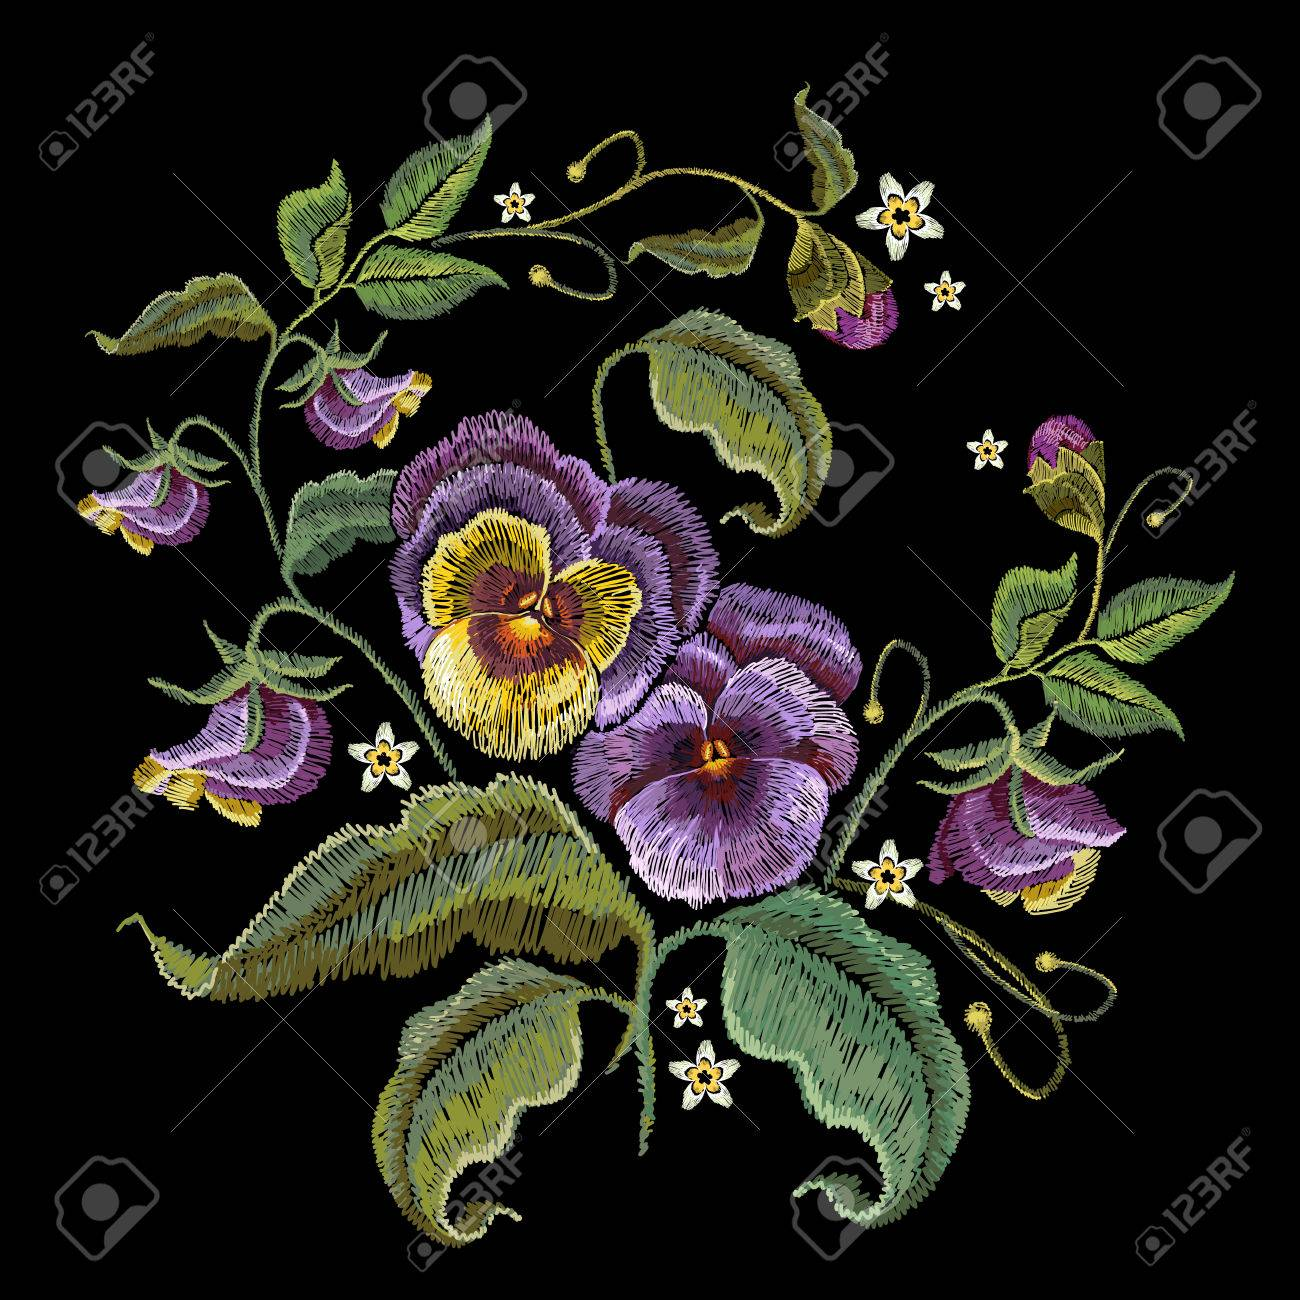 Violets Flower Embroidery Fashionable Design Of Clothes T Shirt Royalty Free Cliparts Vectors And Stock Illustration Image 86178429